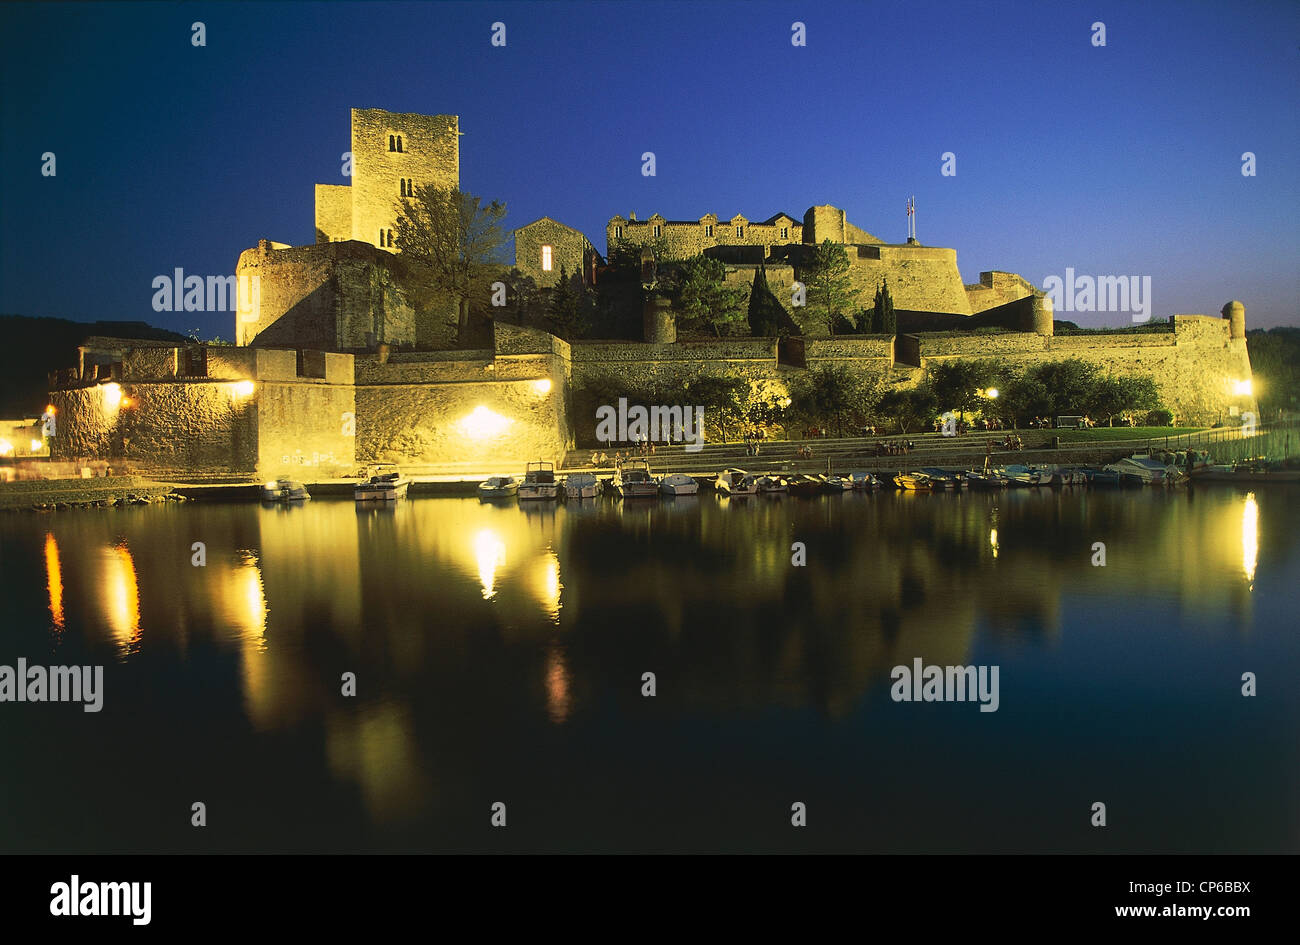 France Languedoc-Roussillon Collioure The Castle Of The Knights Templar Xii-Xviii Sec. Night - Stock Image